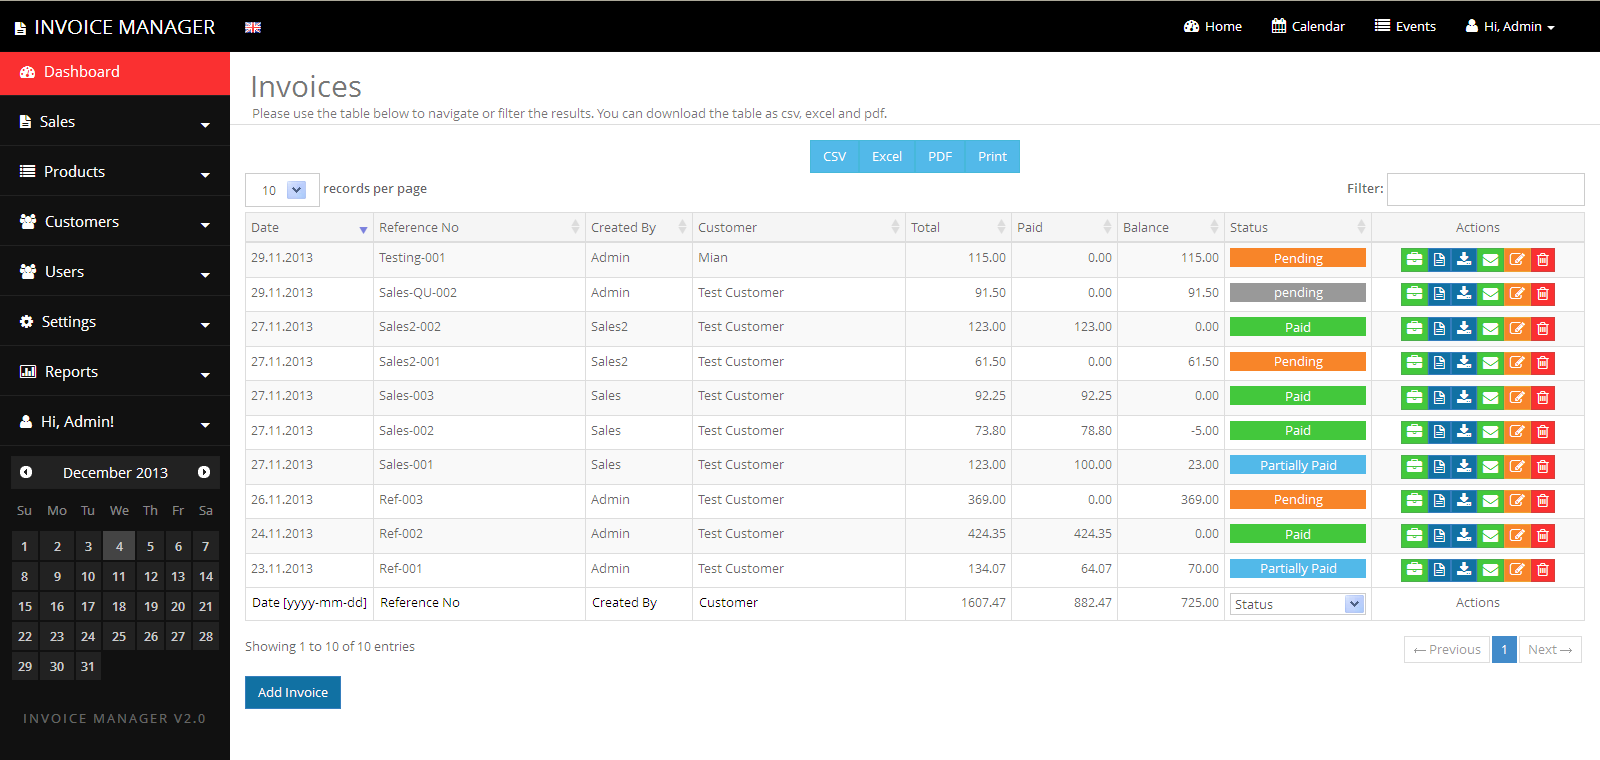 Simple Invoice Manager Invoicing Made Easy By Tecdiary CodeCanyon - Simple invoice manager